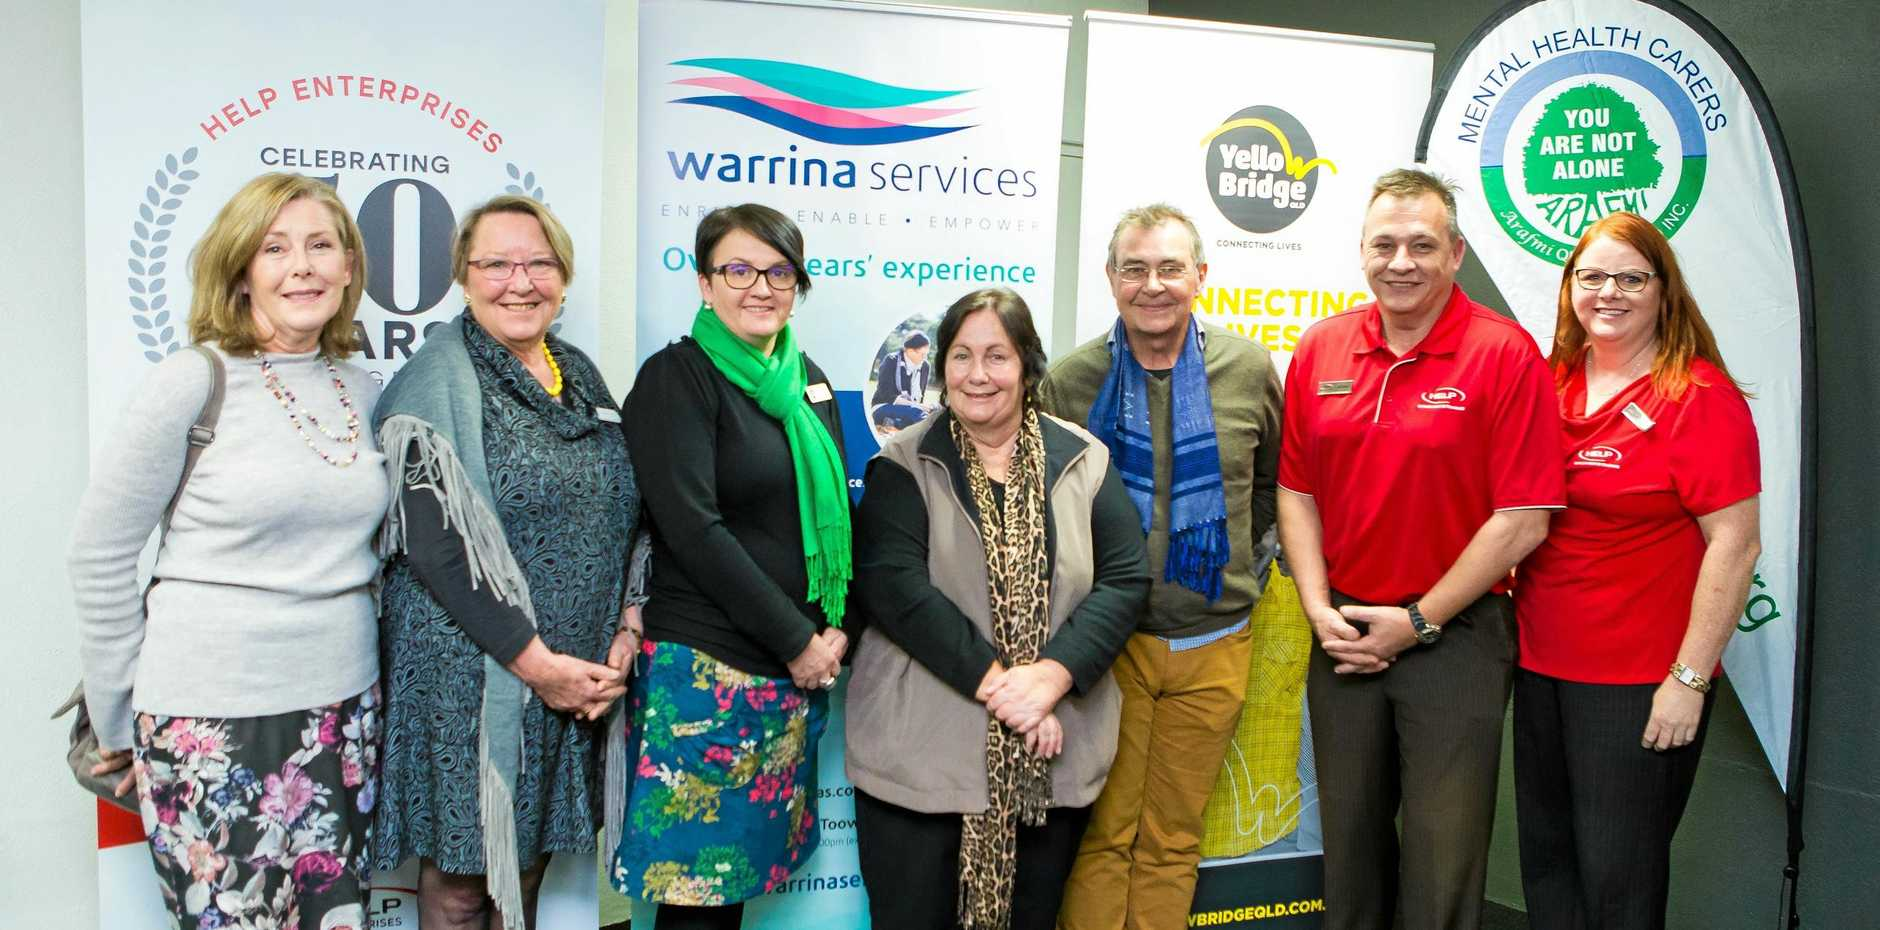 AWARD SUPPORT: Business DisABILITY Awards event partners (from left) Lyndel Bunter, Penny Hamilton, Jodie Collins, Nerida Luck, Mark Setchfield, Kevin Beach and Mandy Maybanks.